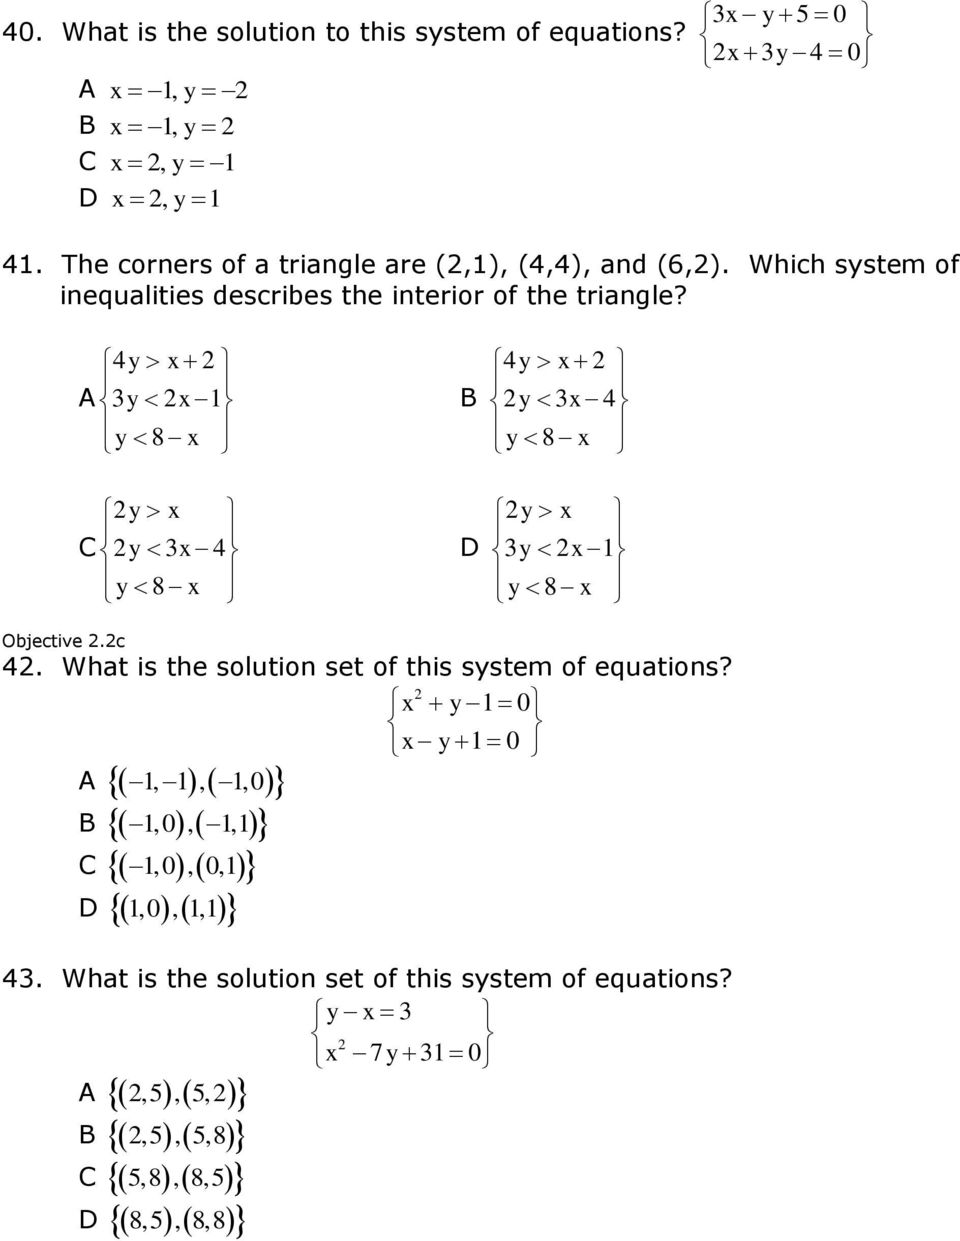 Which system of iequalities describes the iterior of the triagle?